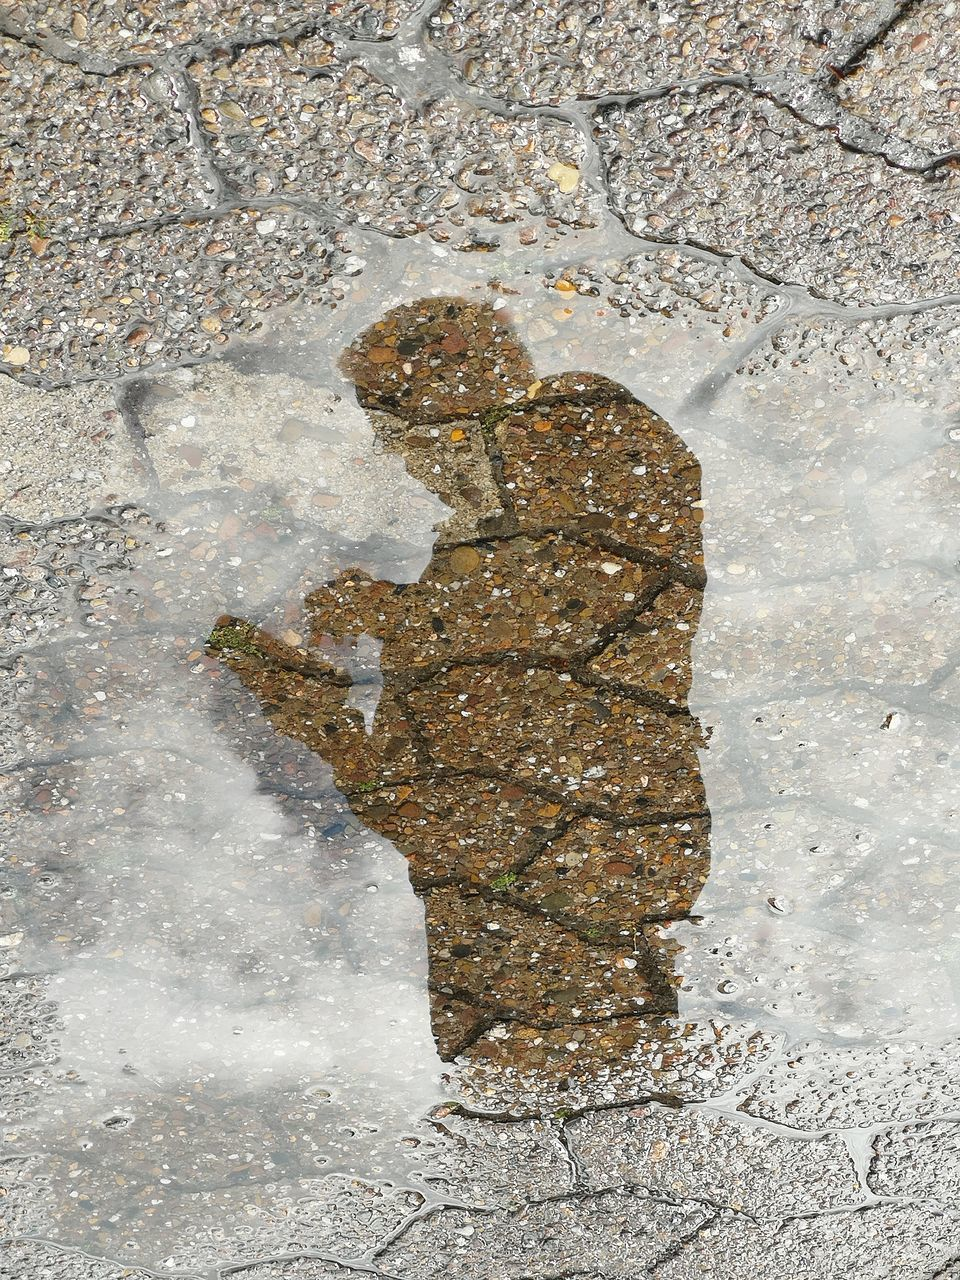 HIGH ANGLE VIEW OF MAN STANDING IN PUDDLE